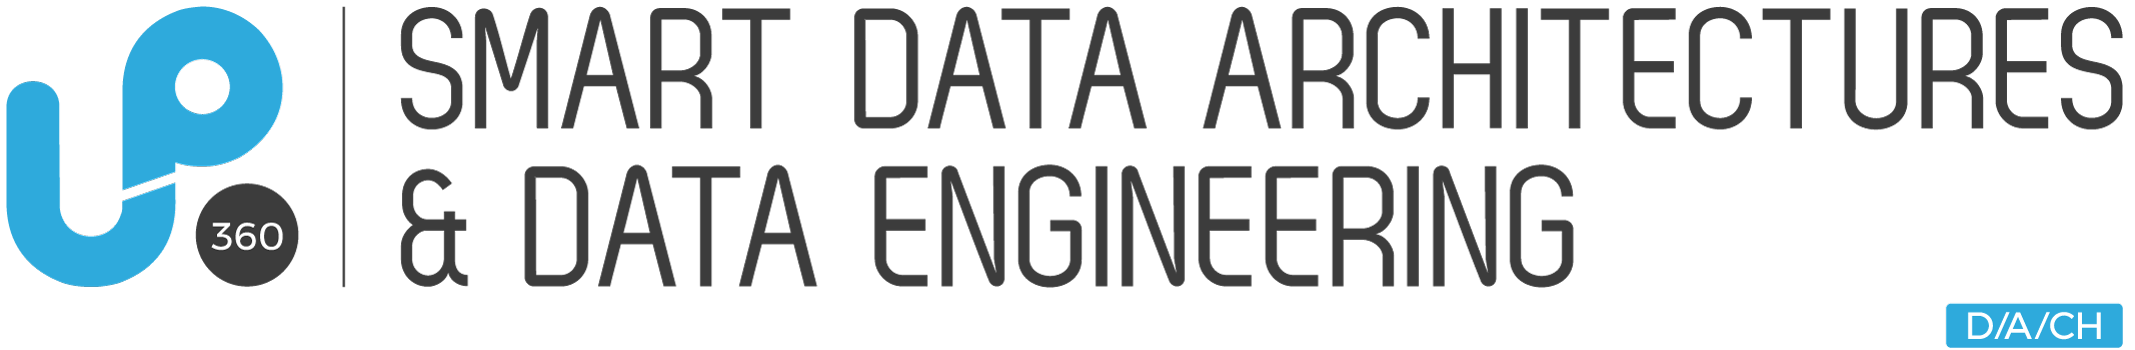 ScaleUp 360° Smart Data Architectures & Data Engineering DACH